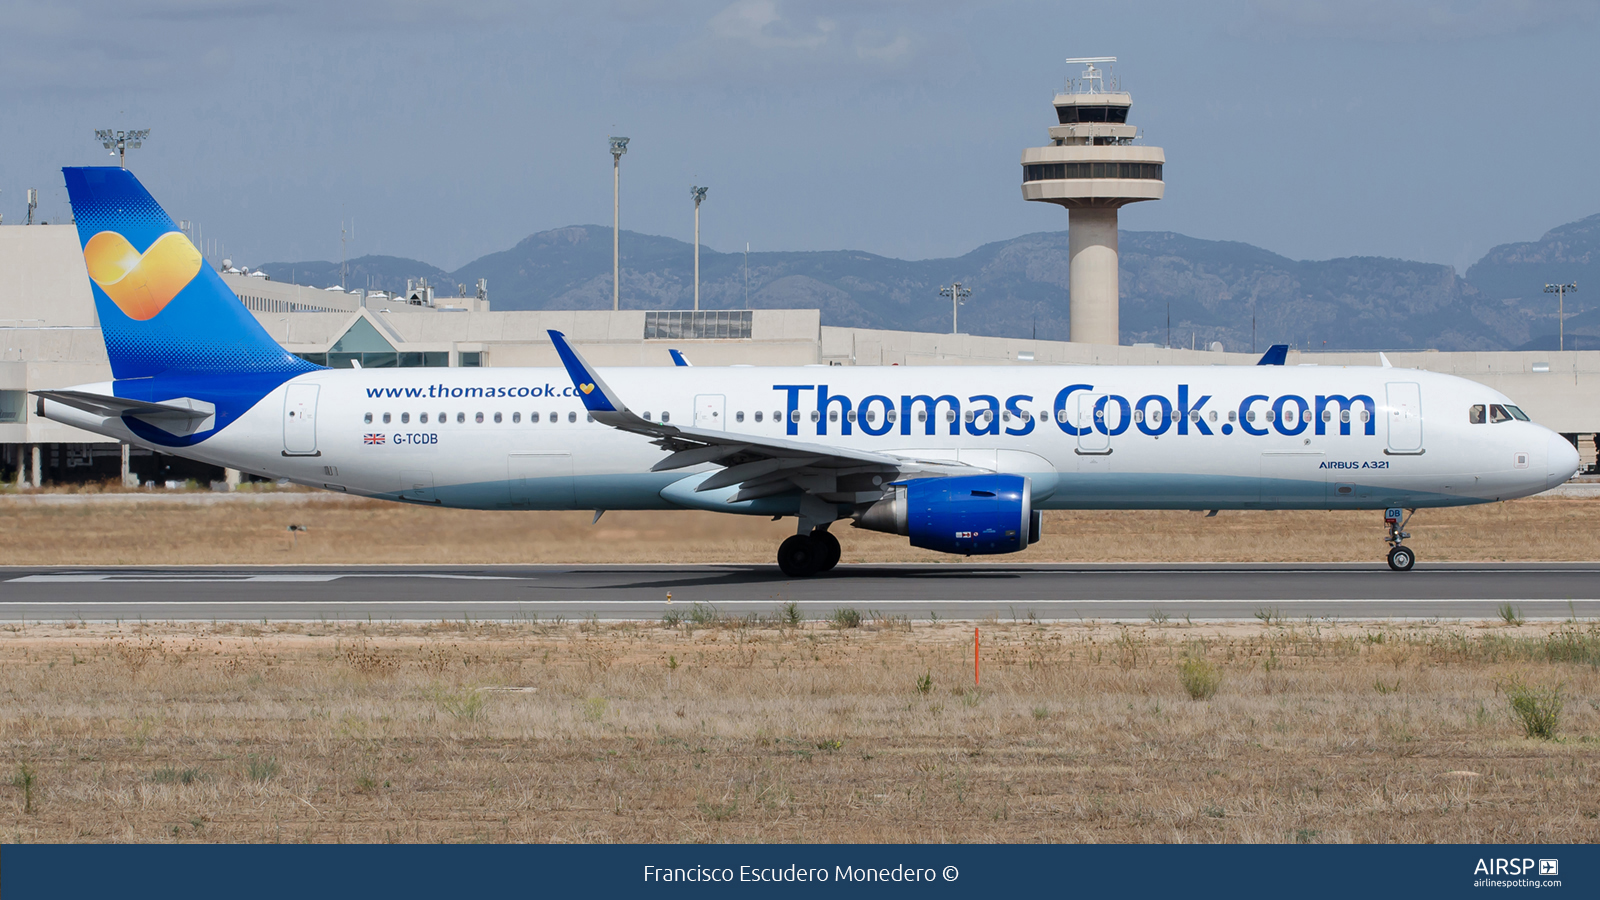 Thomas Cook Airlines  Airbus A321  G-TCDB